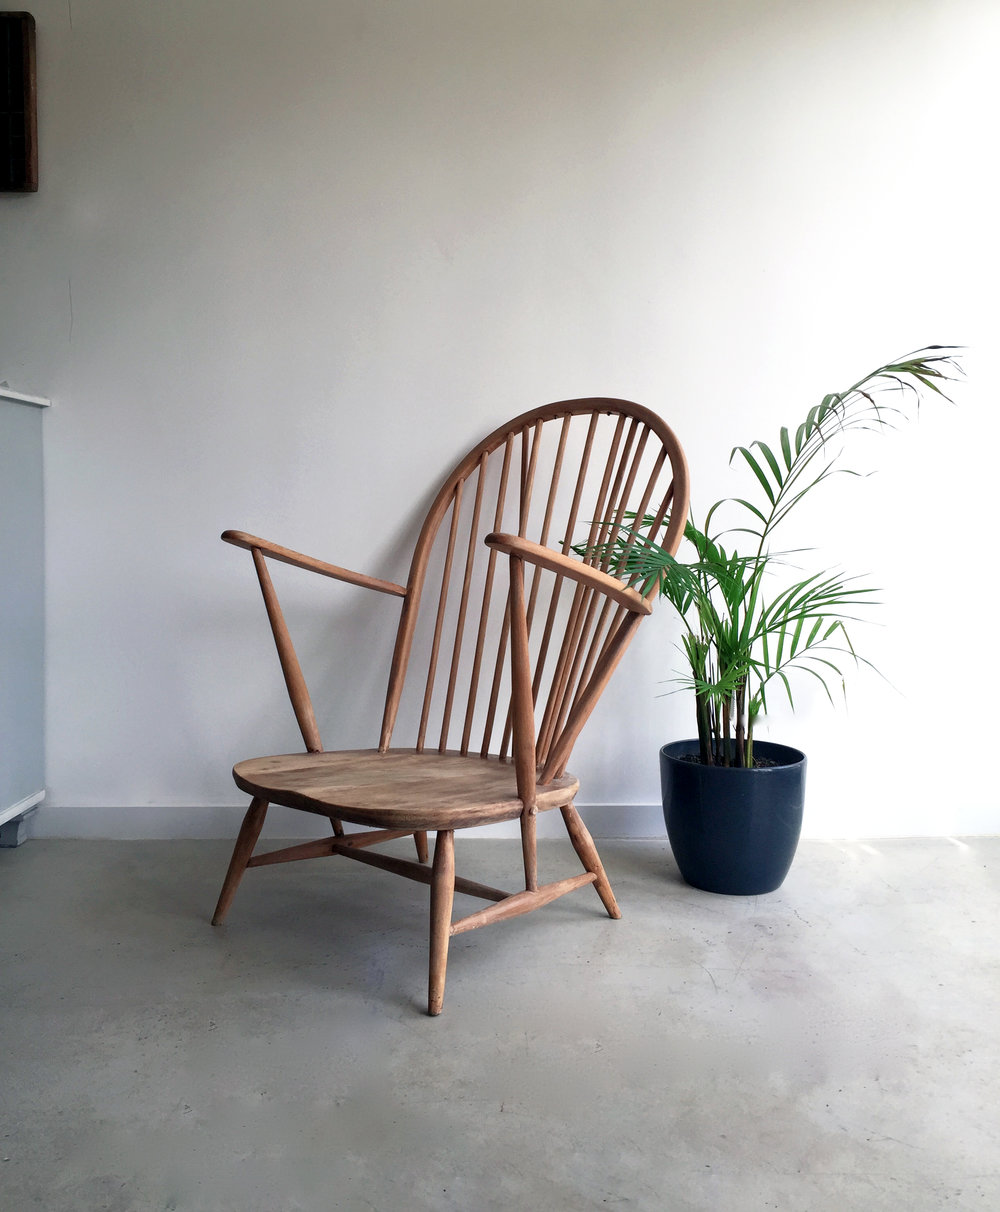 Ercol Fireside Chair